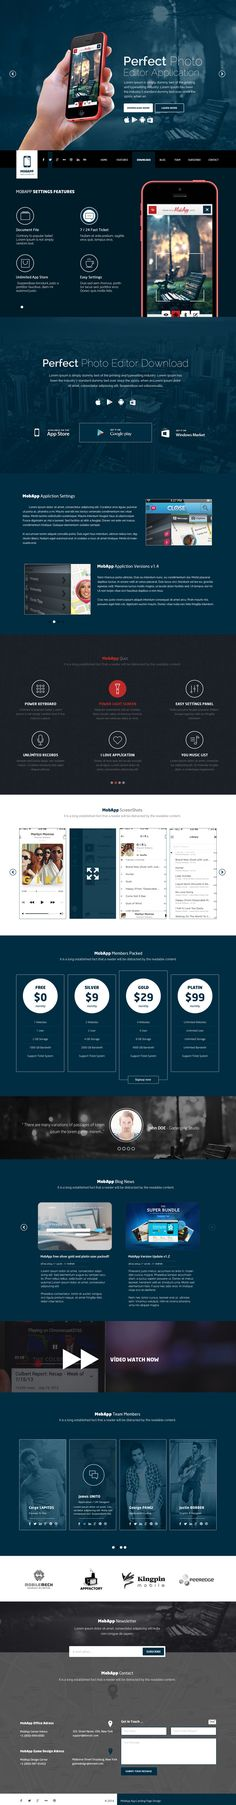 MobApp - One Page App HTML5 Landing Page  #html5templates #psdtemplates